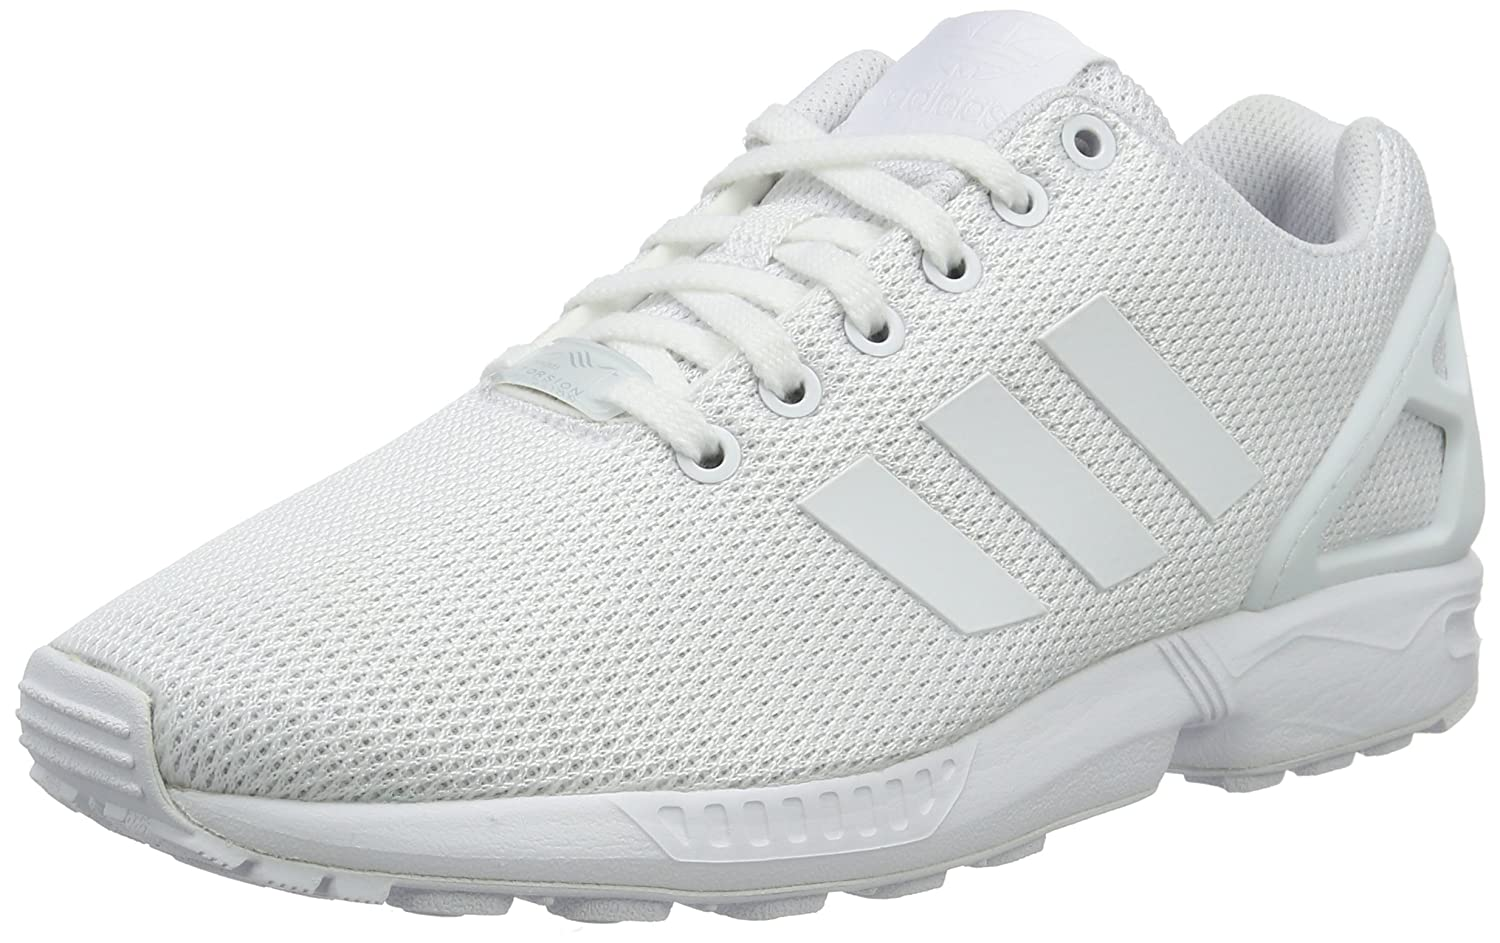 74b7d79e135db adidas Zx Flux Unisex Adult Low-Top Sneakers  Amazon.co.uk  Shoes   Bags